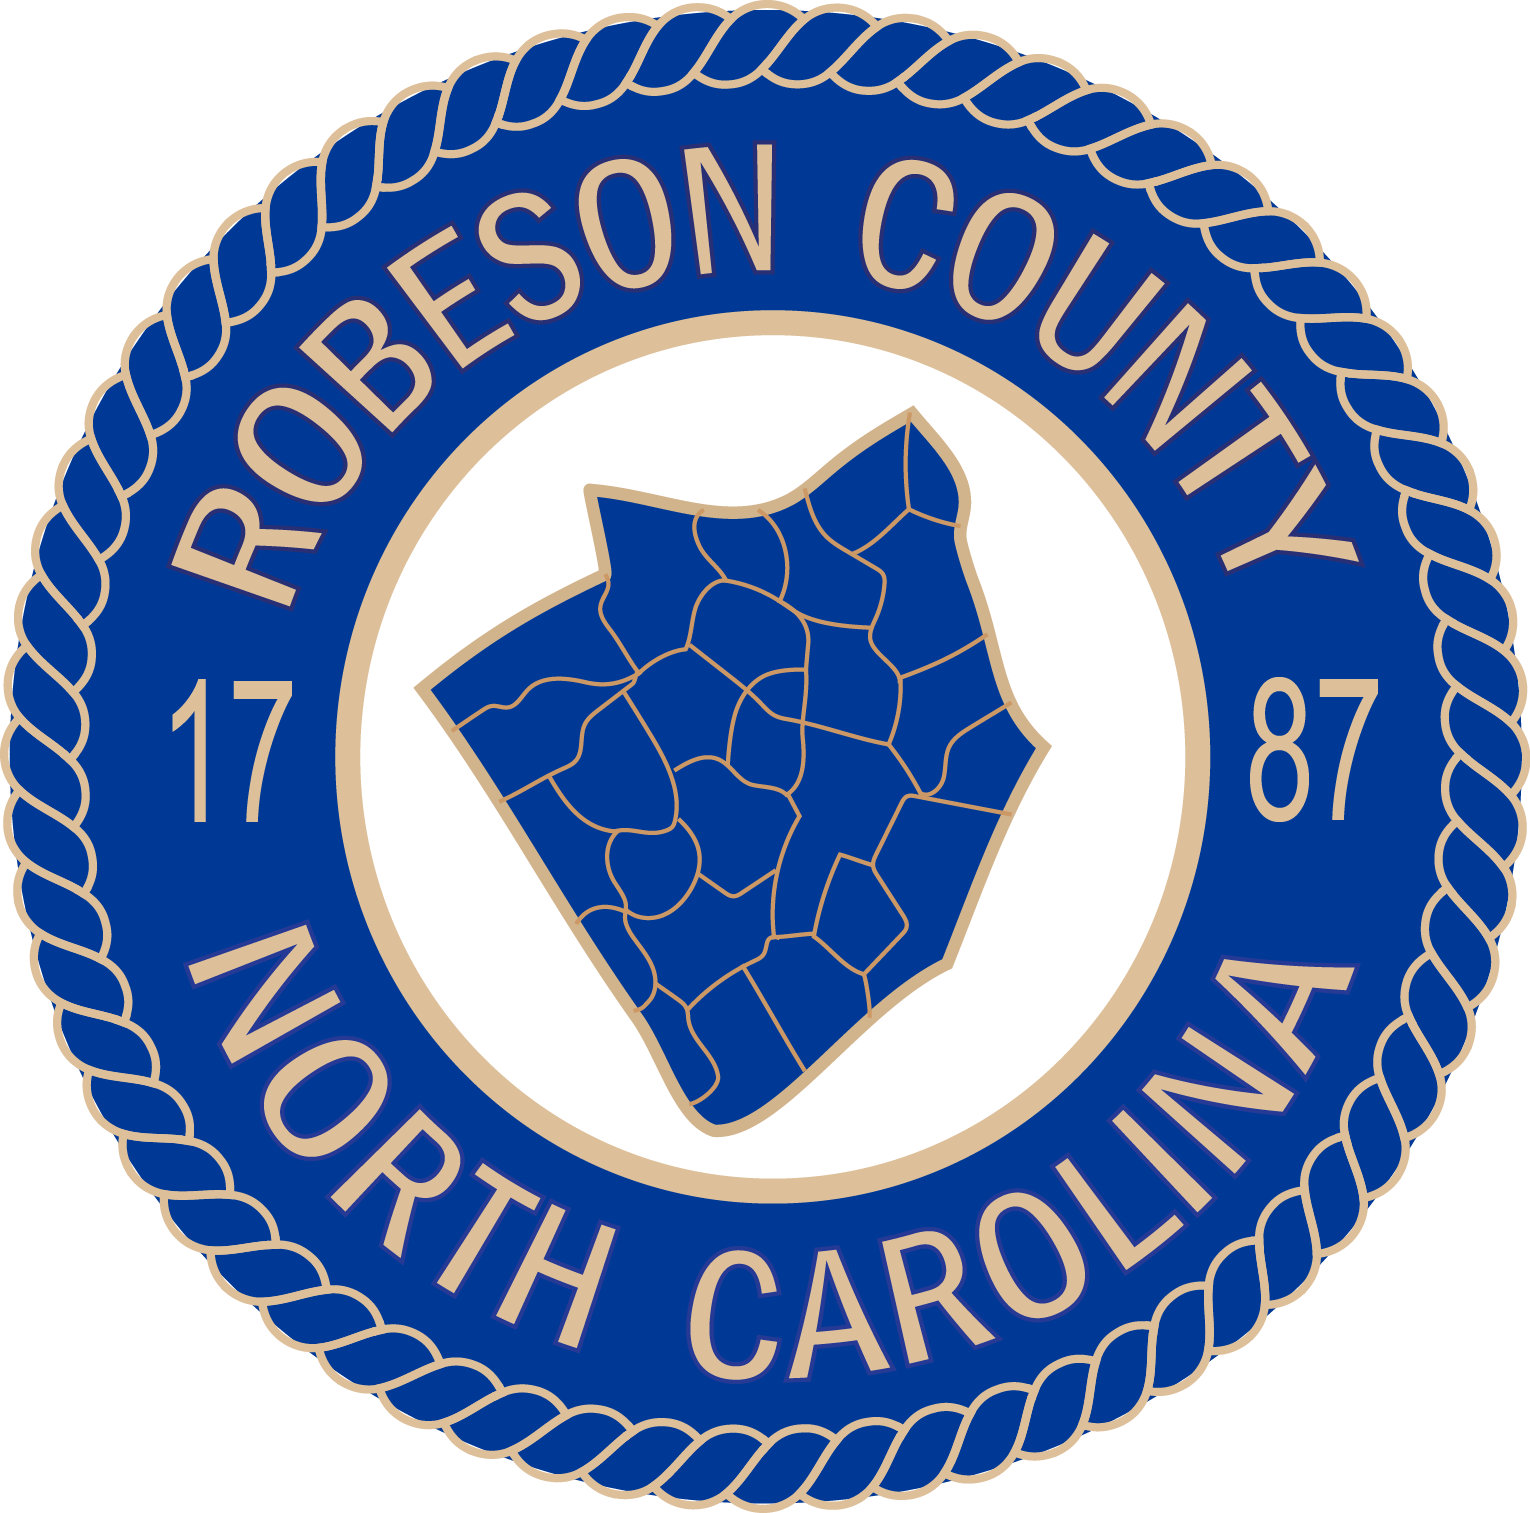 Robeson County, North Carolina logo.